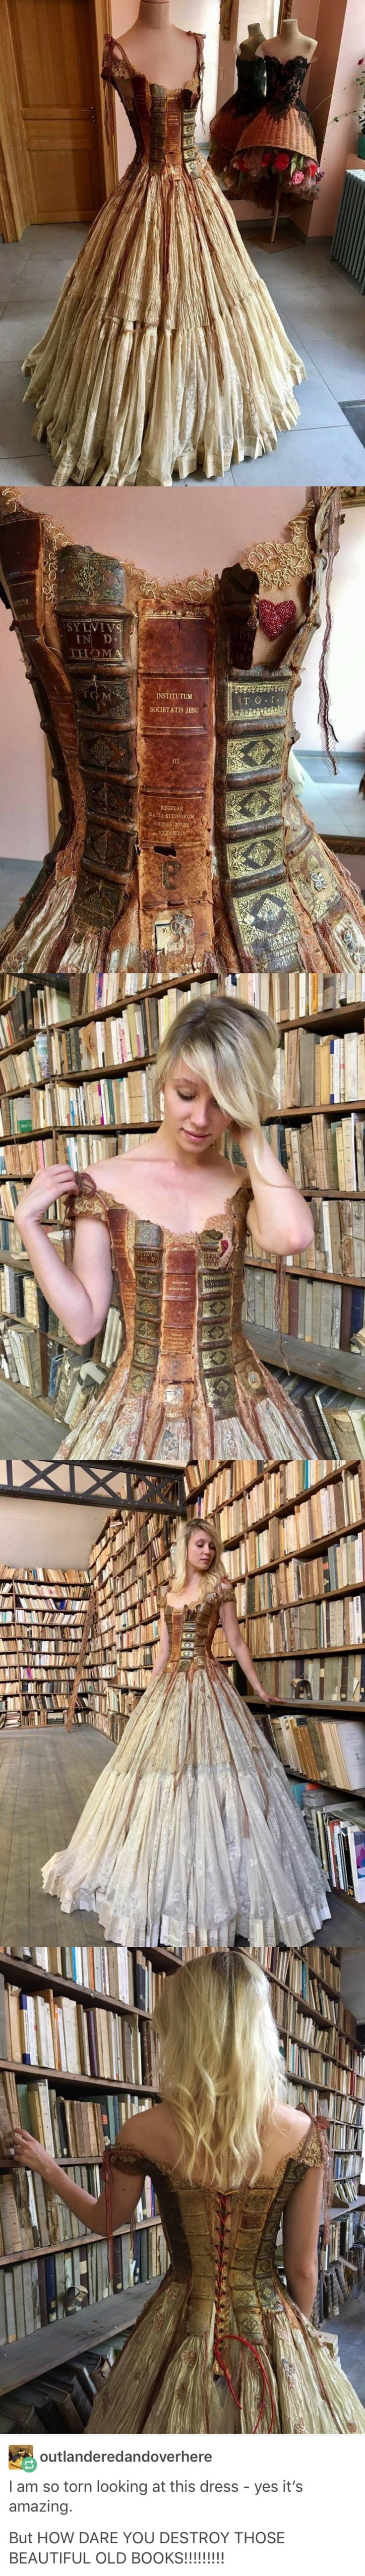 Perhaps the books were already torn apart from being read so much as someone's favorite book and they just didn't want to throw away the spines and such. That would be acceptable. https://www.steampunkartifacts.com